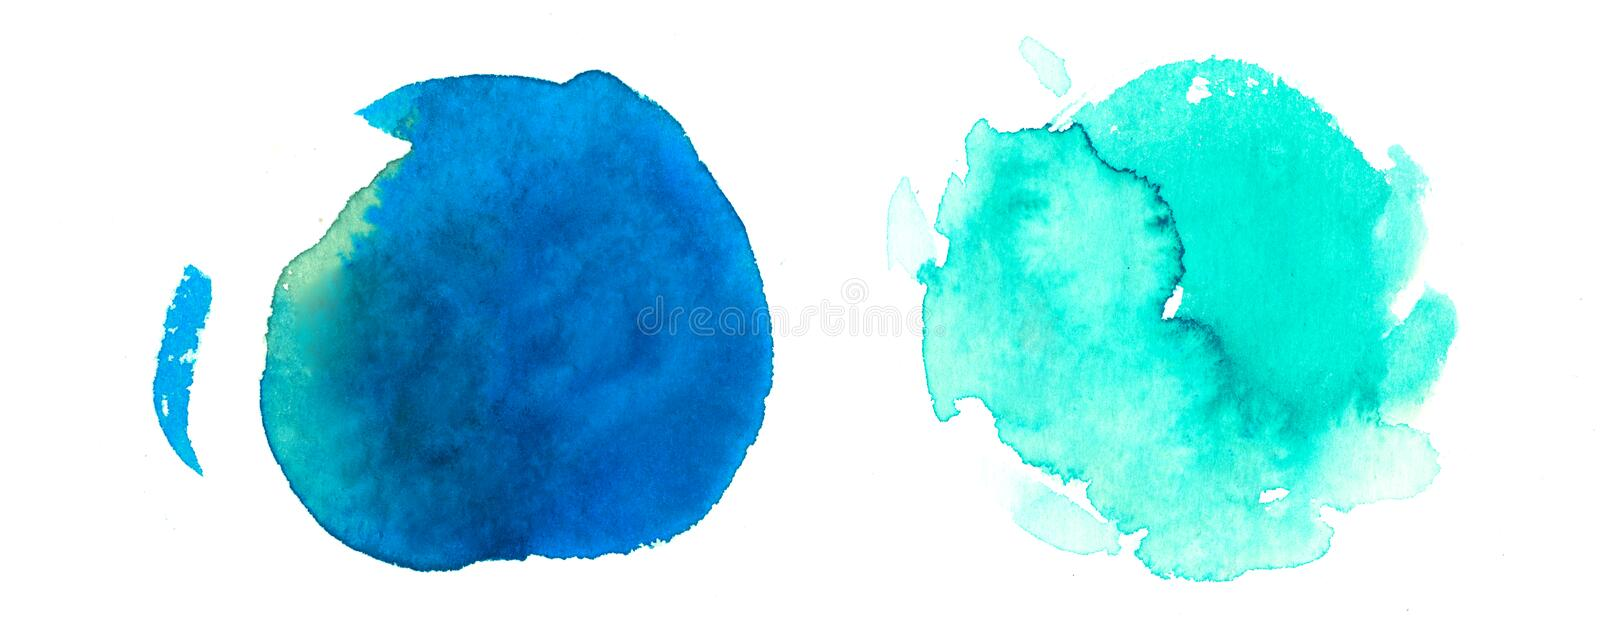 Rainbow colors watercolor paint stains backgrounds stock illustration